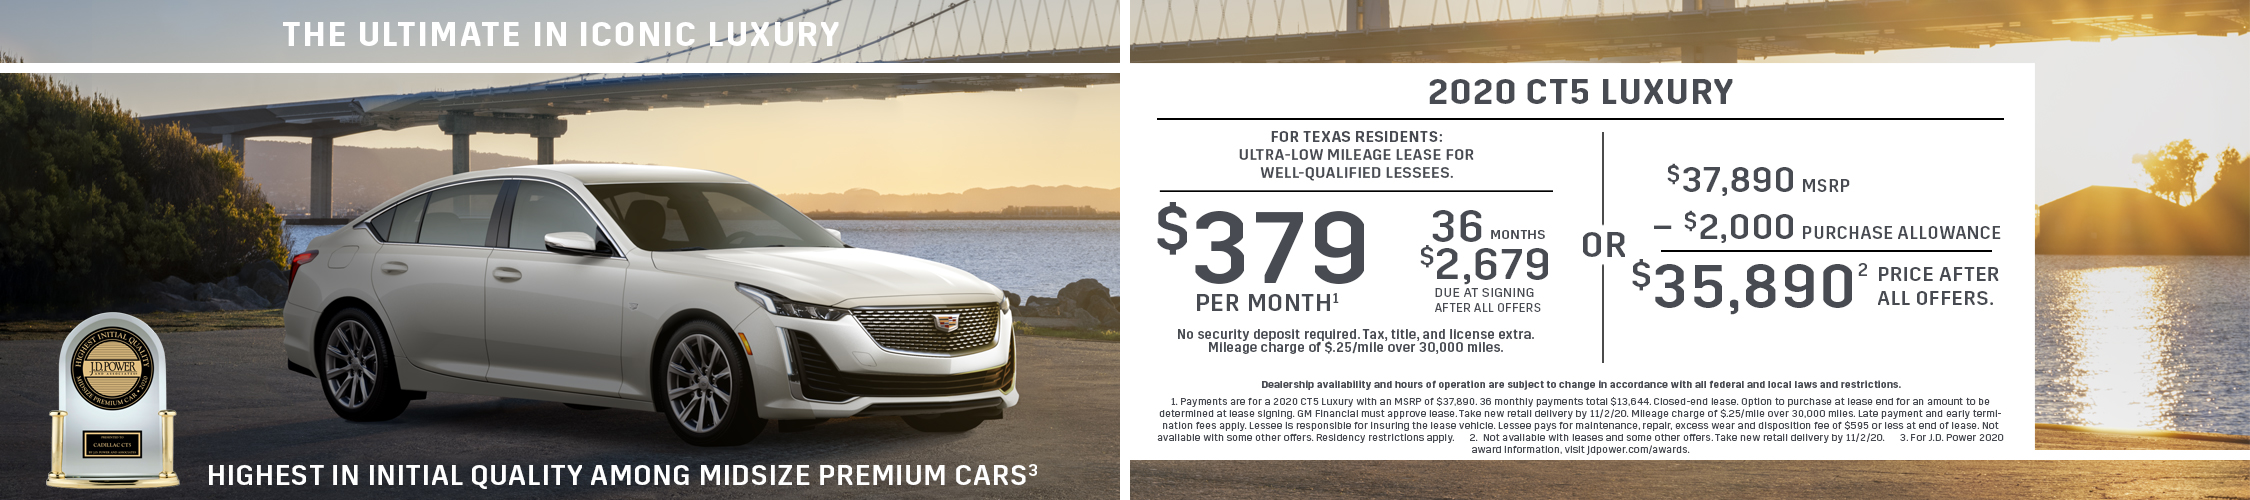 2020 CT5 Luxury: Lease Offer (Image) - e6796b